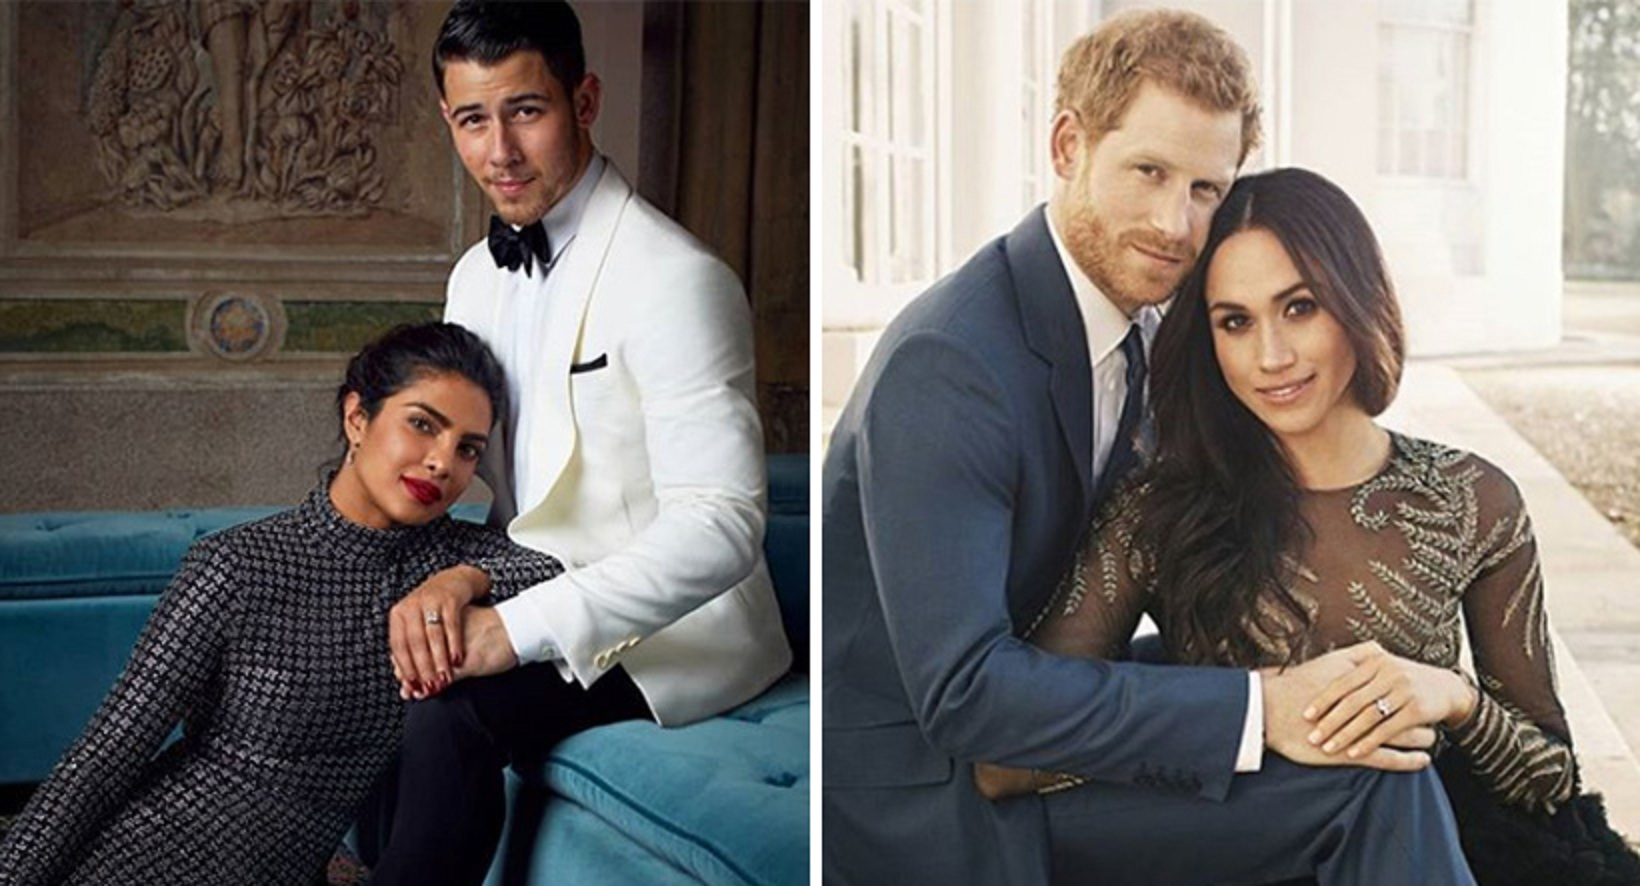 Priyanka Chopra and Nick Jonas recreate Meghan and Harry's engagement pose!